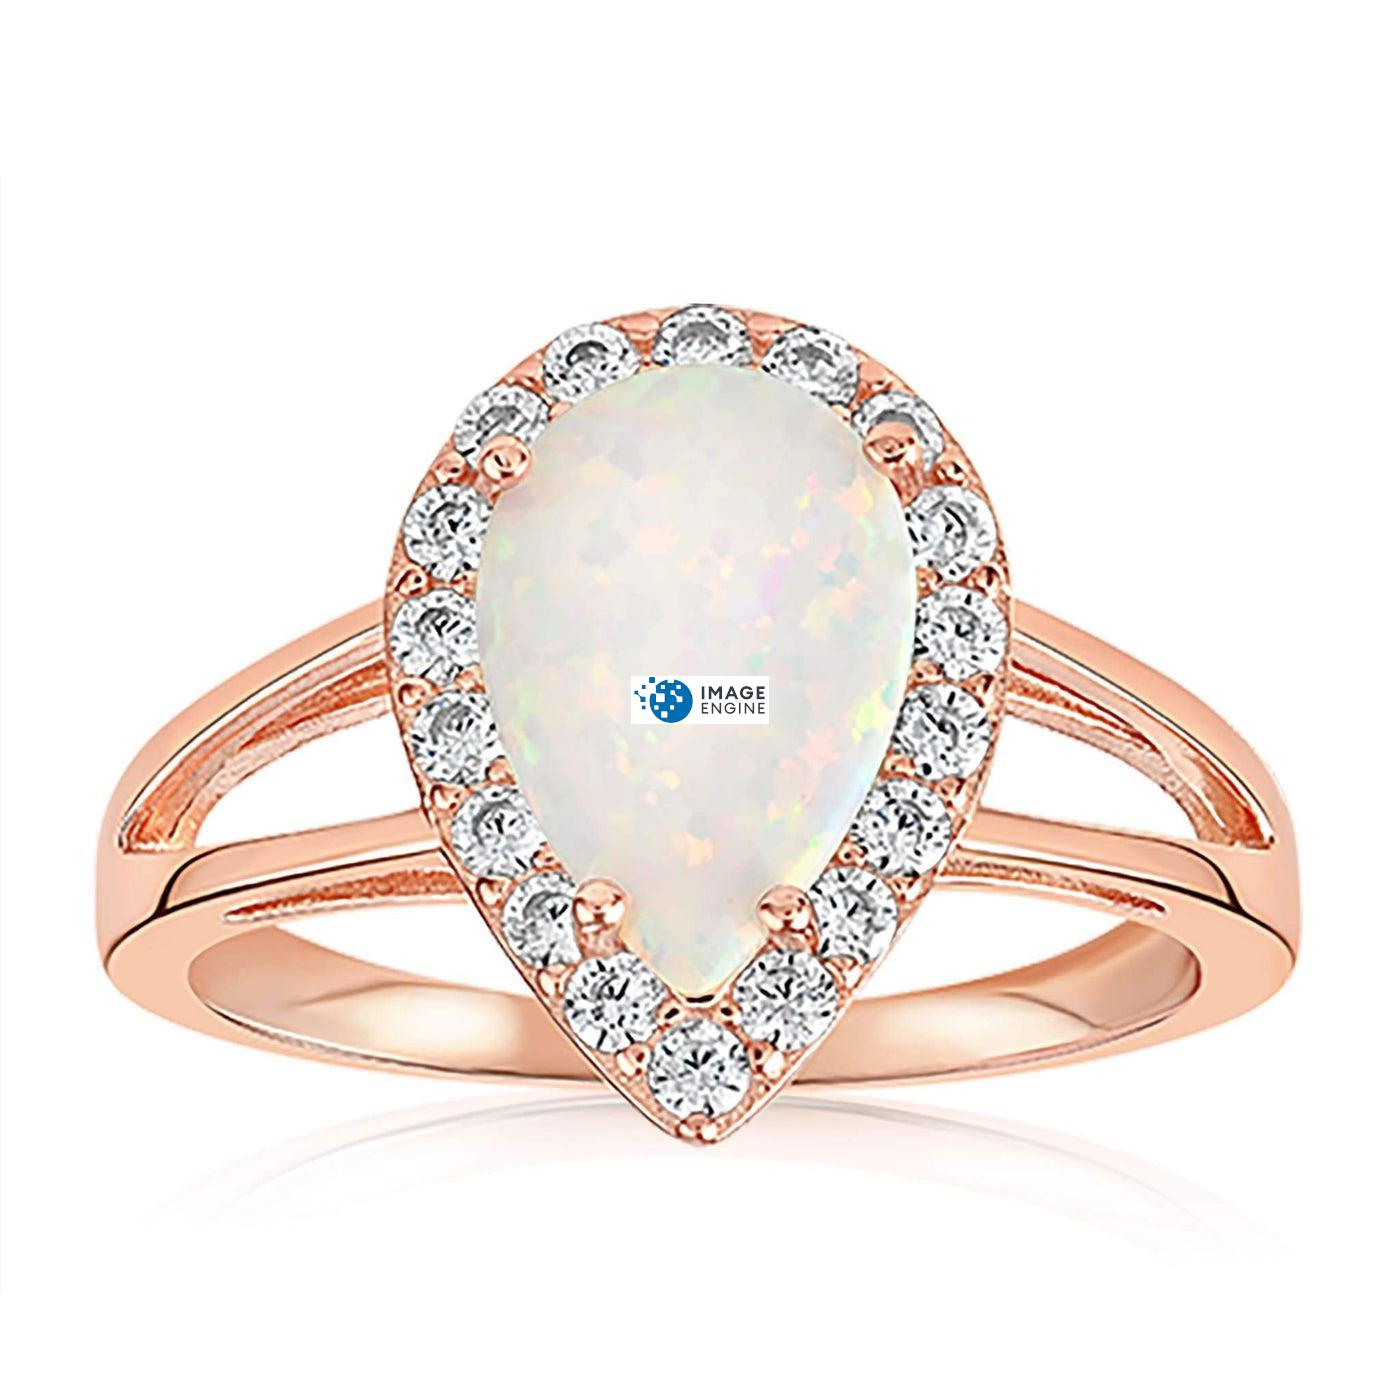 White Fire Champagne Opal Ring - Front View Facing Down - 18K Rose Gold Vermeil